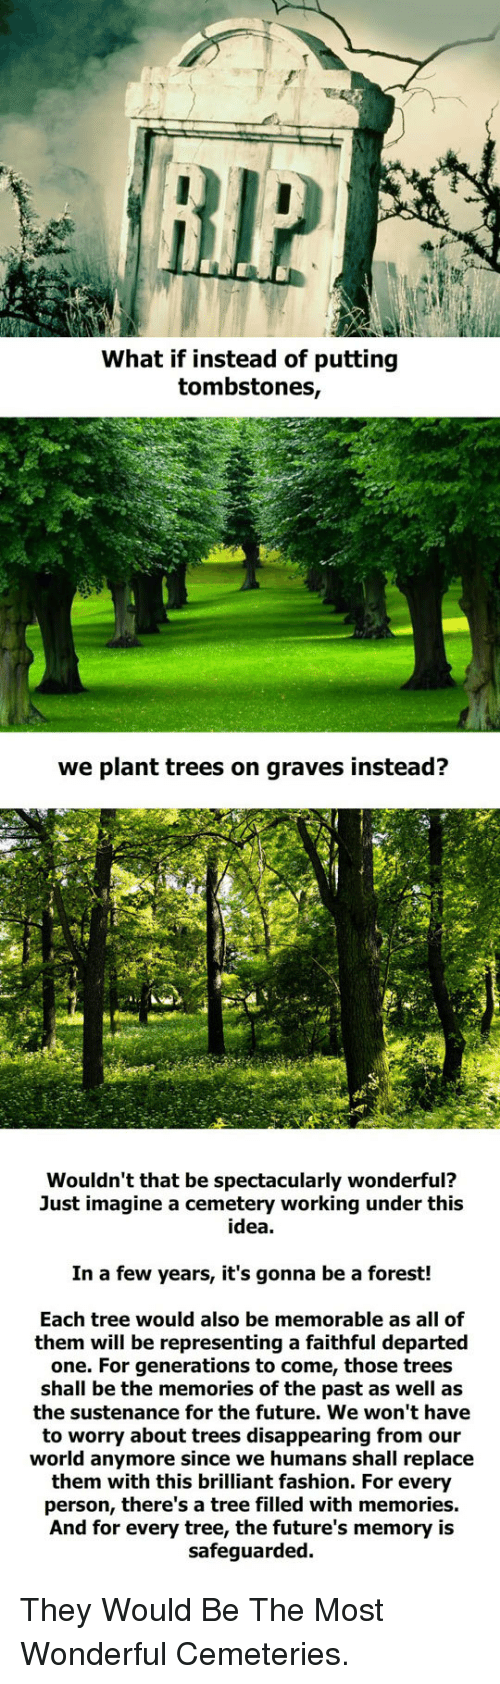 departed: What if instead of putting  tombstones,  we plant trees on graves instead?  Wouldn't that be spectacularly wonderful?  Just imagine a cemetery working under this  idea  In a few years, it's gonna be a forest!  Each tree would also be memorable as all of  them will be representing a faithful departed  one. For generations to come, those trees  shall be the memories of the past as well as  the sustenance for the future. We won't have  to worry about trees disappearing from our  world anymore since we humans shall replace  them with this brilliant fashion. For every  person, there's a tree filled with memories.  And for every tree, the future's memory is  safeguarded. <p>They Would Be The Most Wonderful Cemeteries.</p>